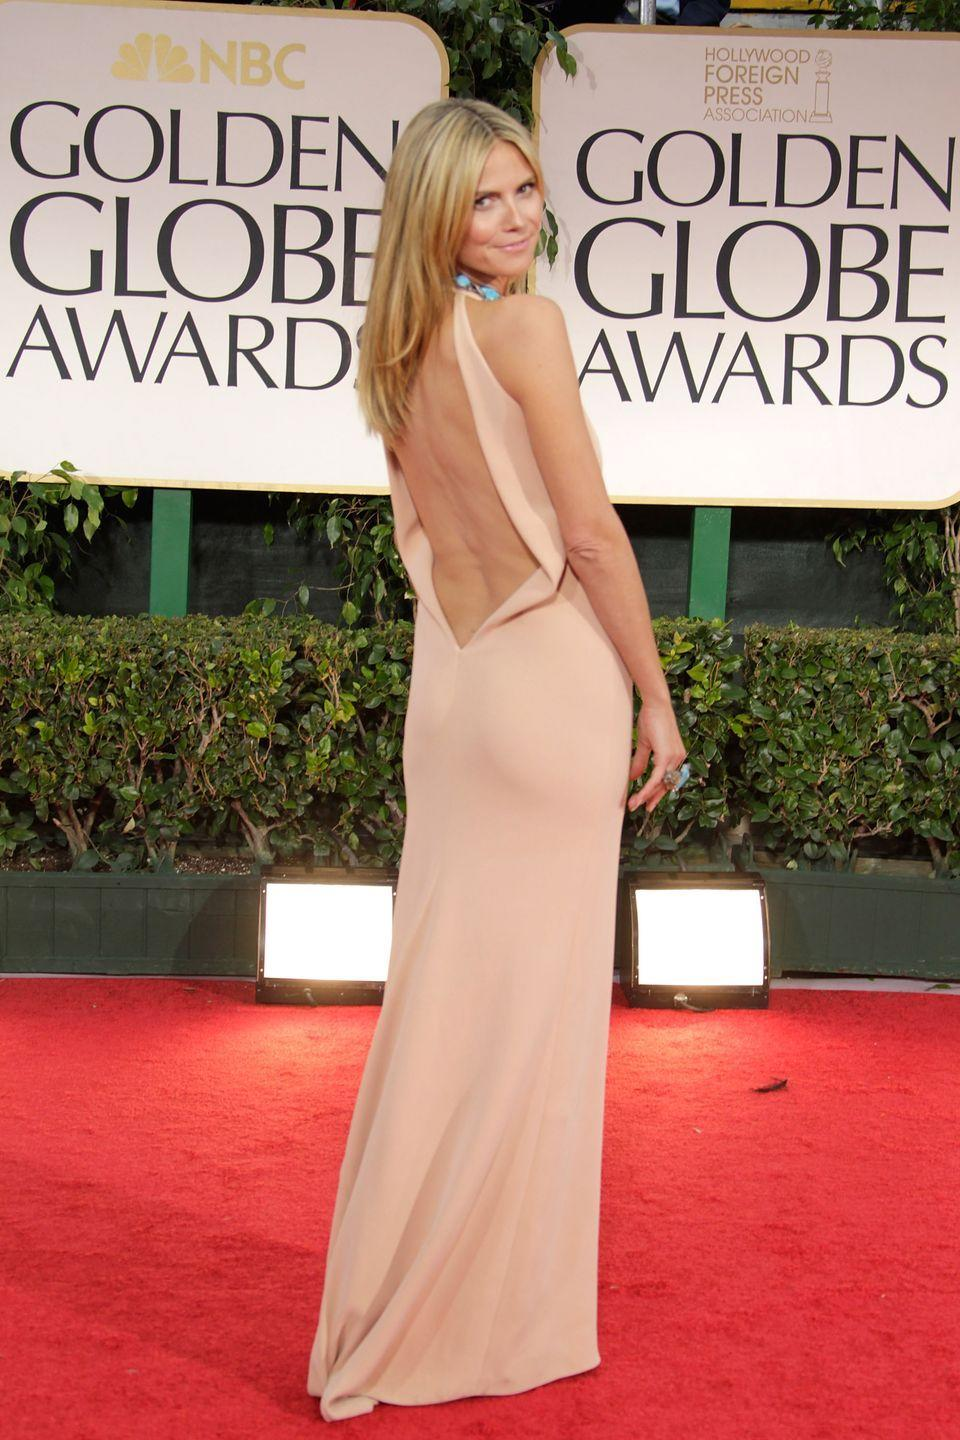 <p>The model slipped into a down-to-there beige backless gown by Calvin Klein in 2012.</p>